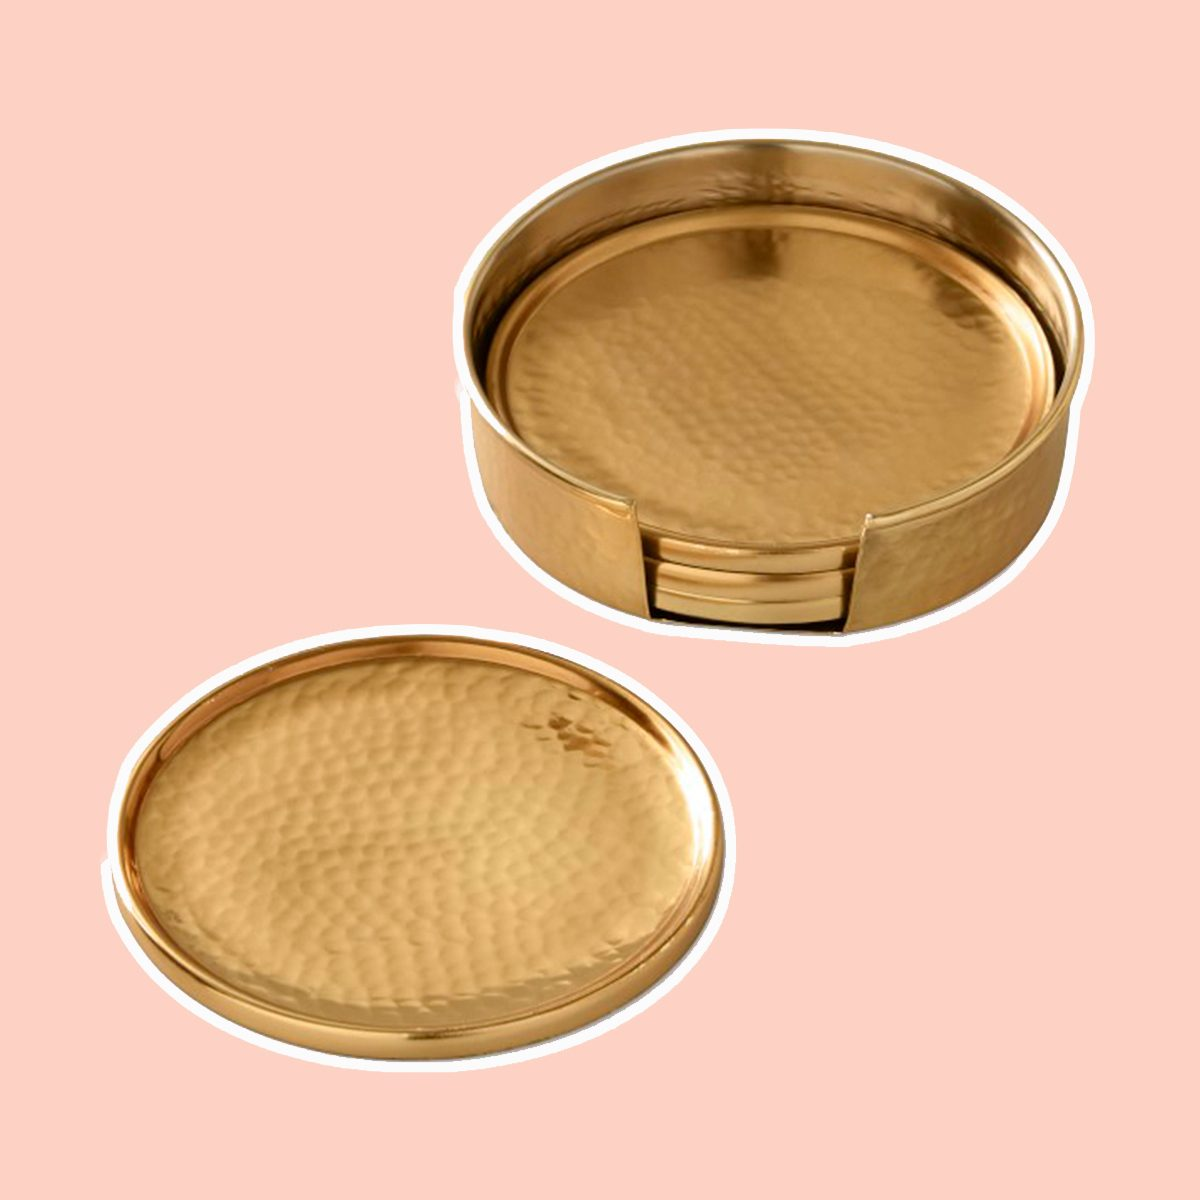 Antique Brass Hammered Coasters with Holder, Set of 4